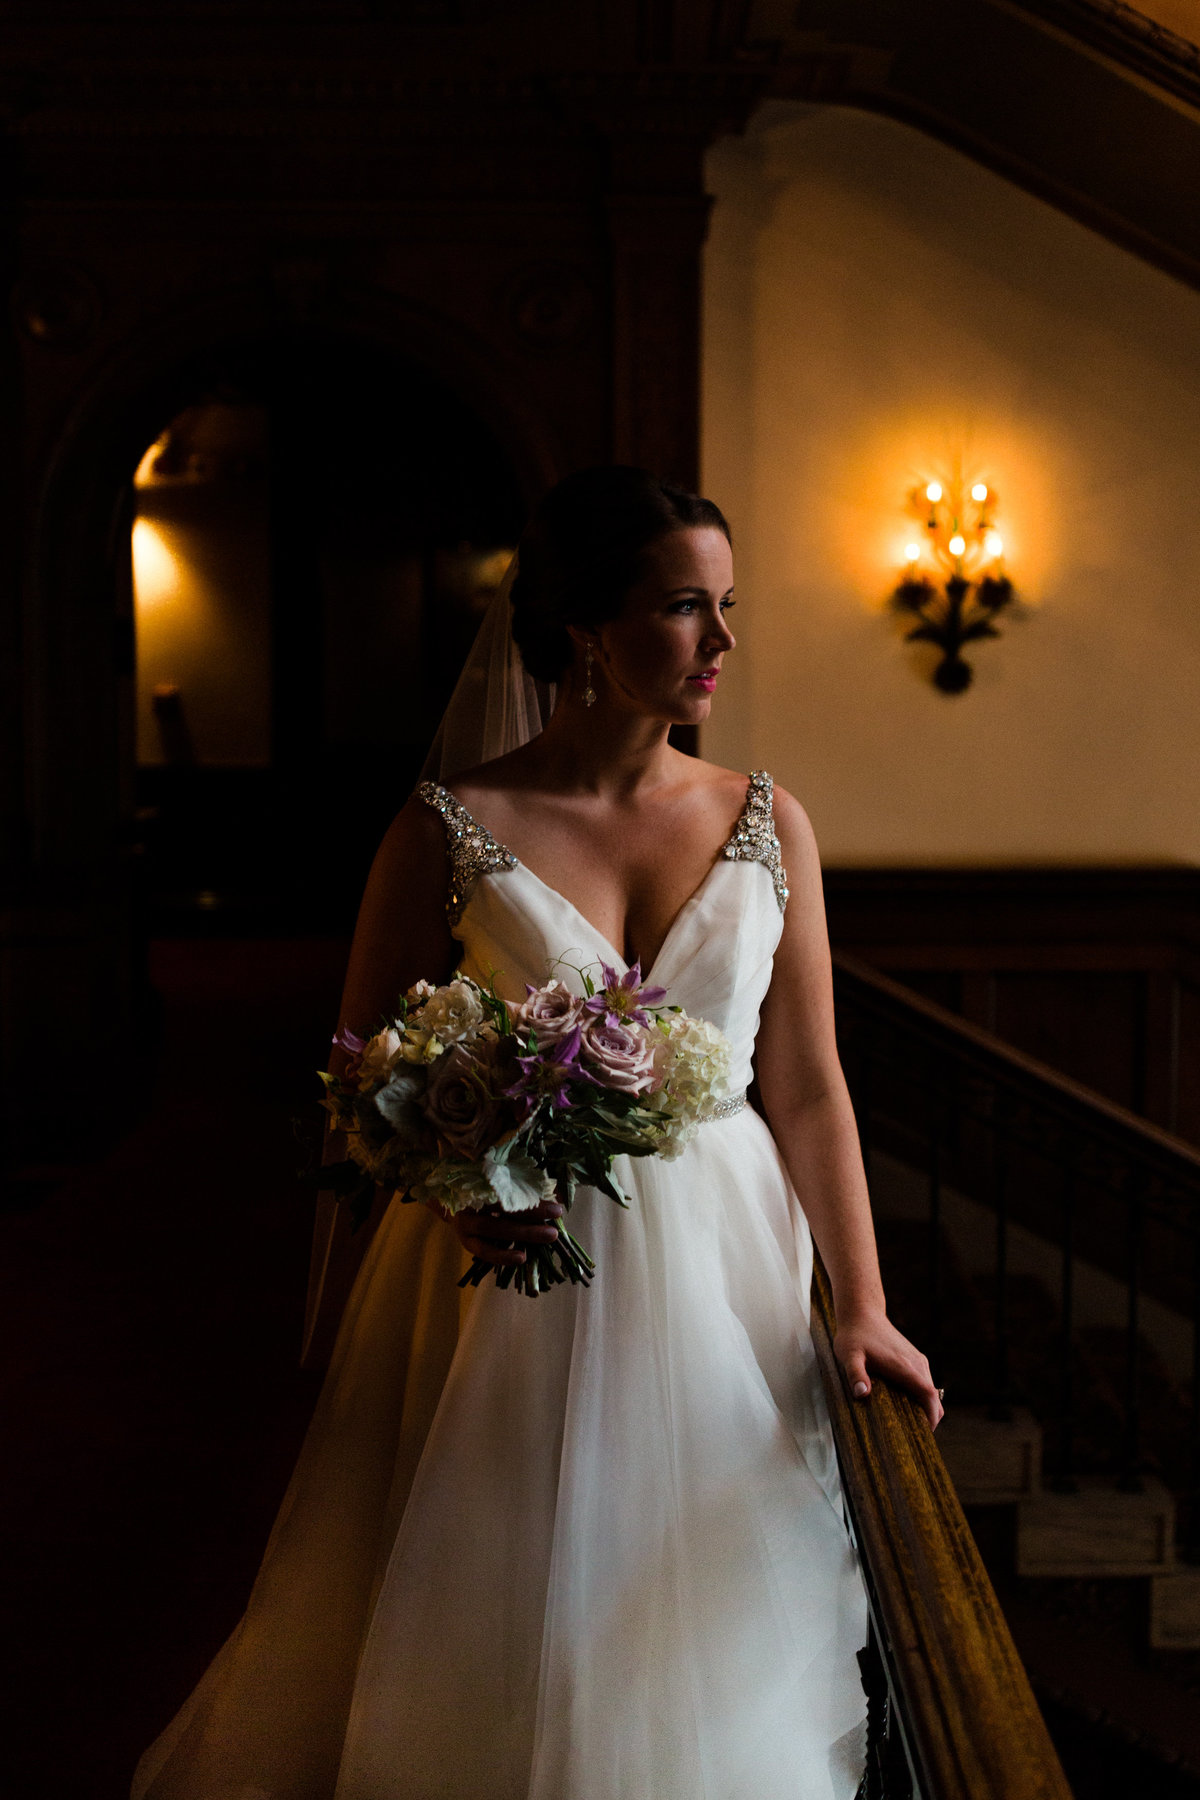 A dramatic portrait of a bride in her Miss Hayley Paige wedding gown from the Gown shop